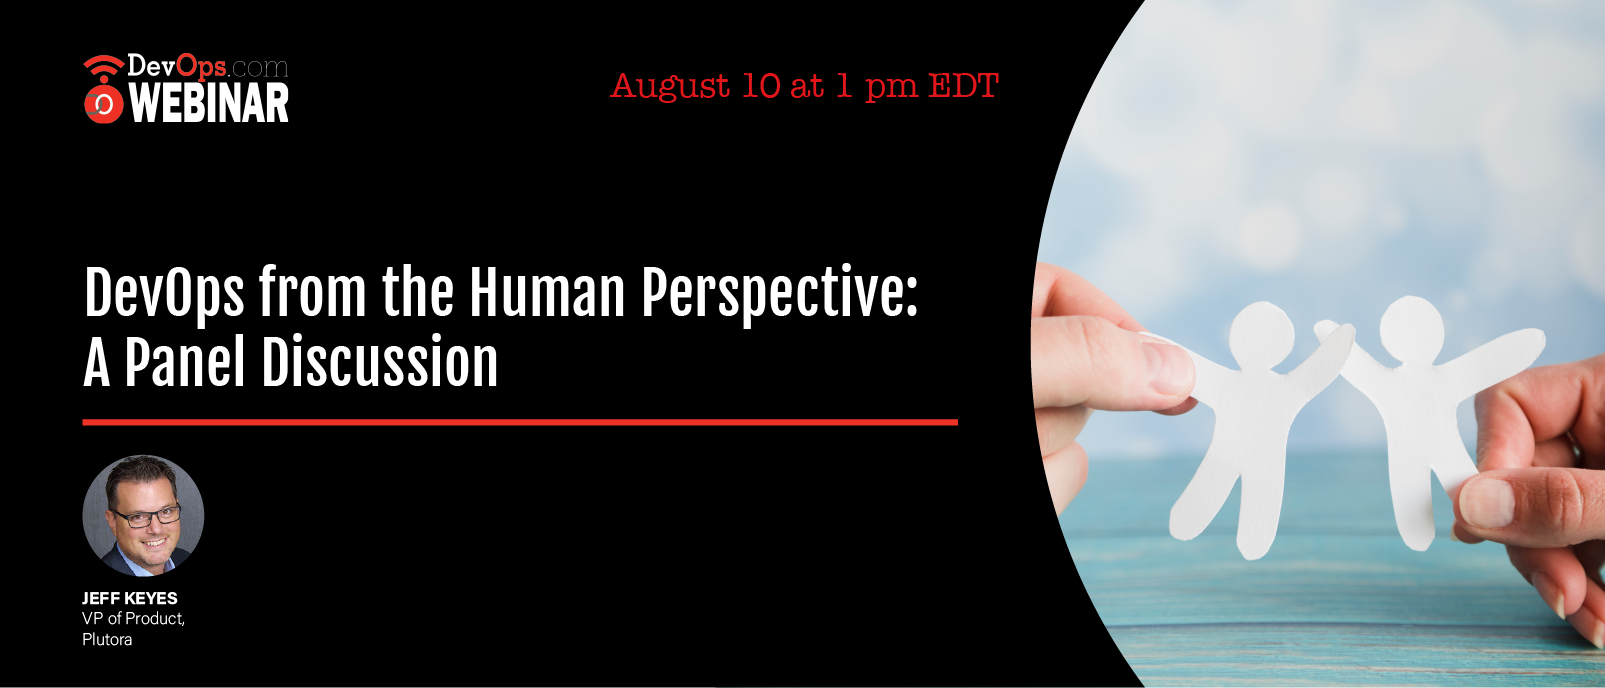 DevOps from the Human Perspective: A Panel Discussion